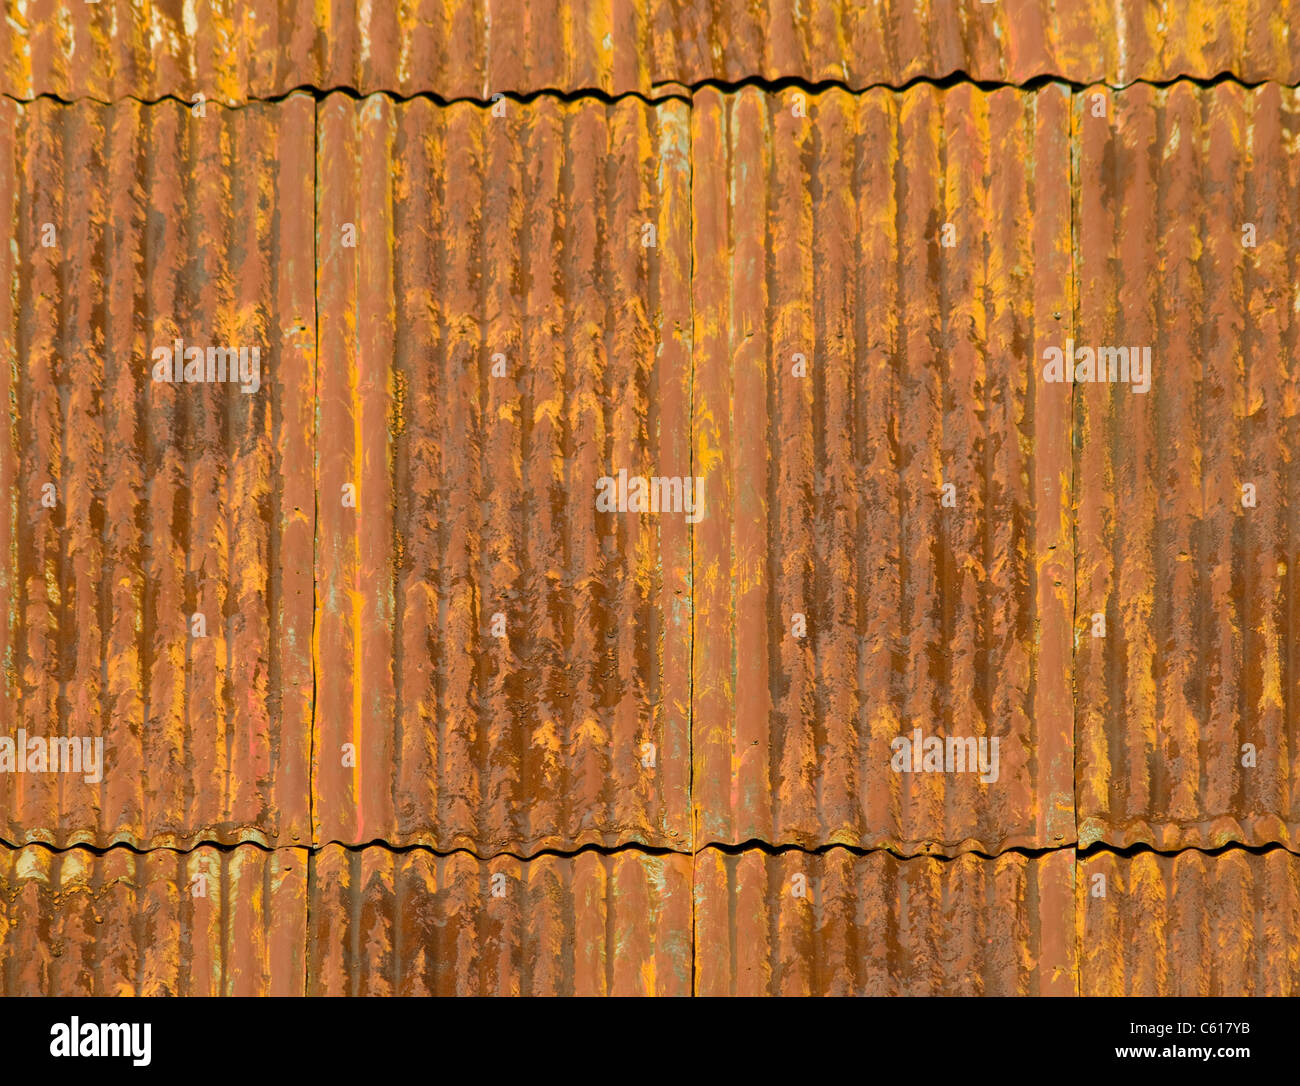 Corroded And Rusty Corrugated Metal Roof Panels Stock Photo Alamy